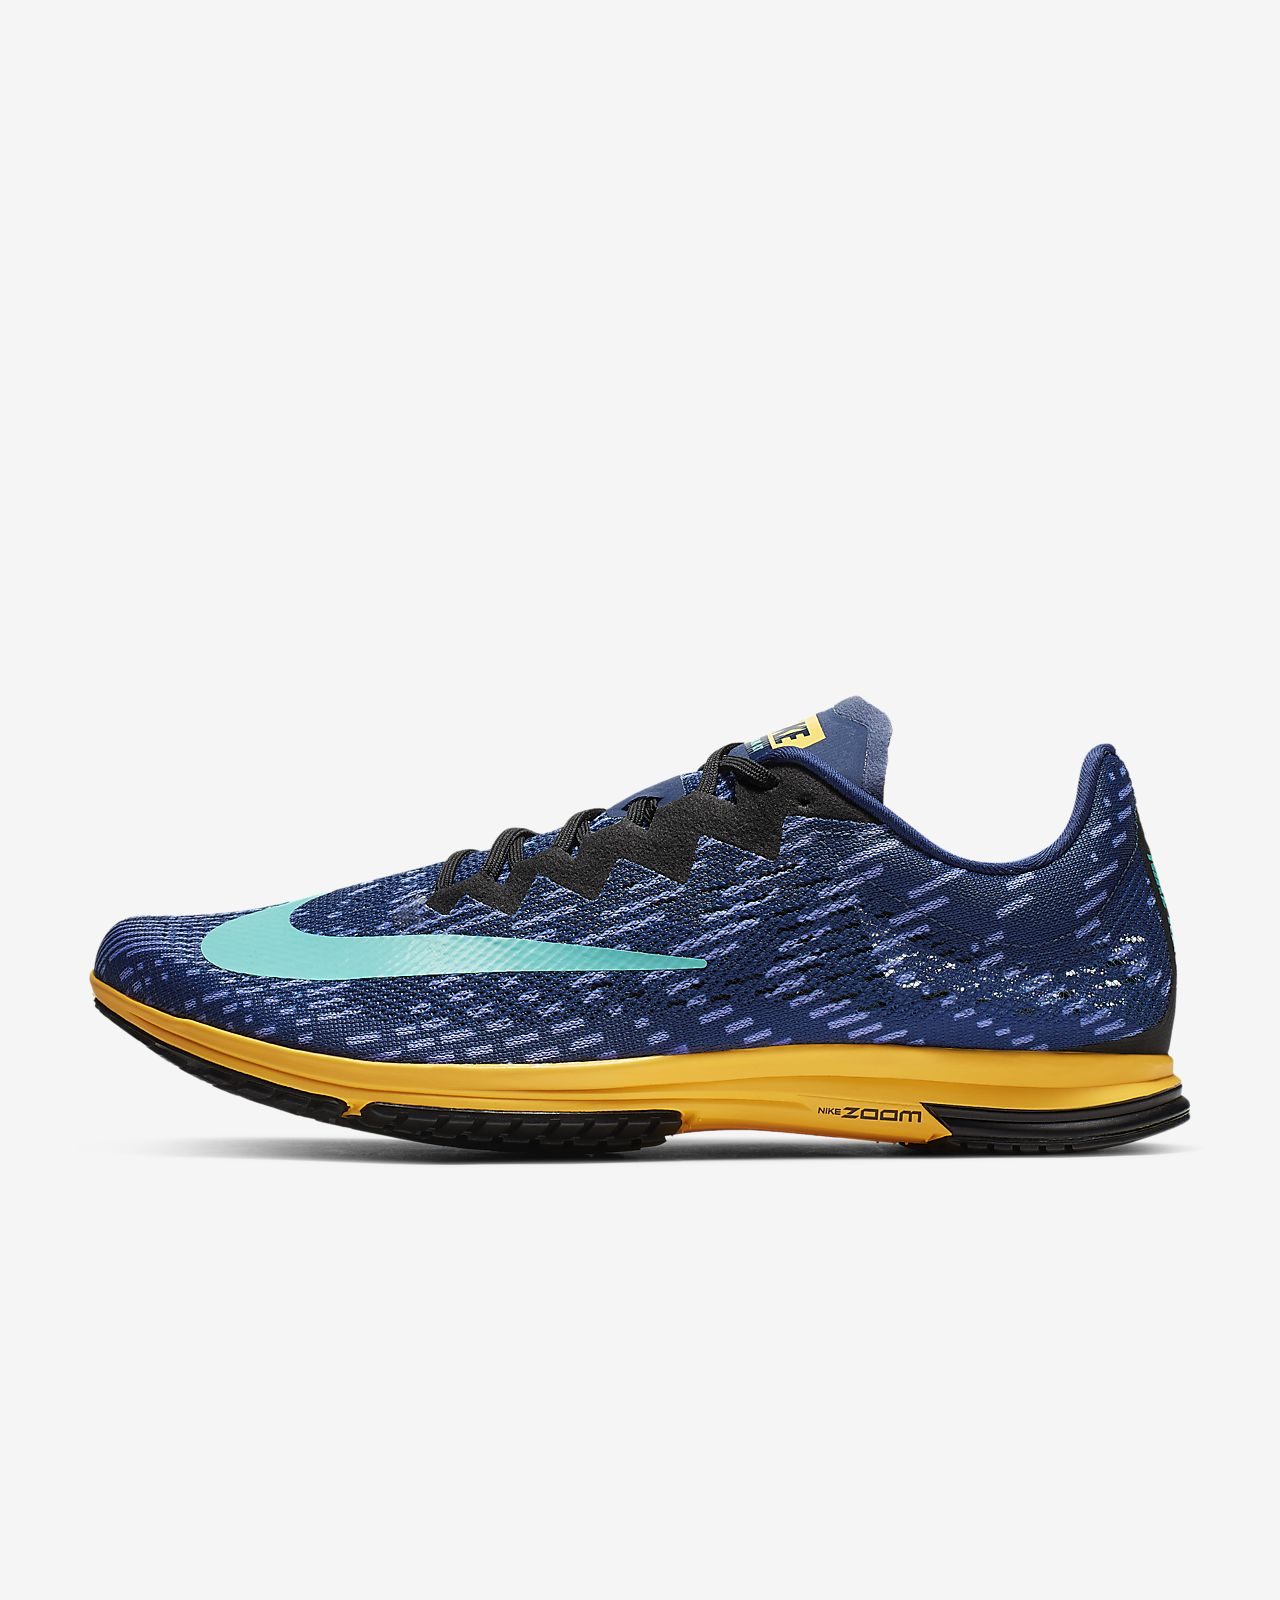 Nike Air Zoom Streak LT 4 男/女跑步鞋